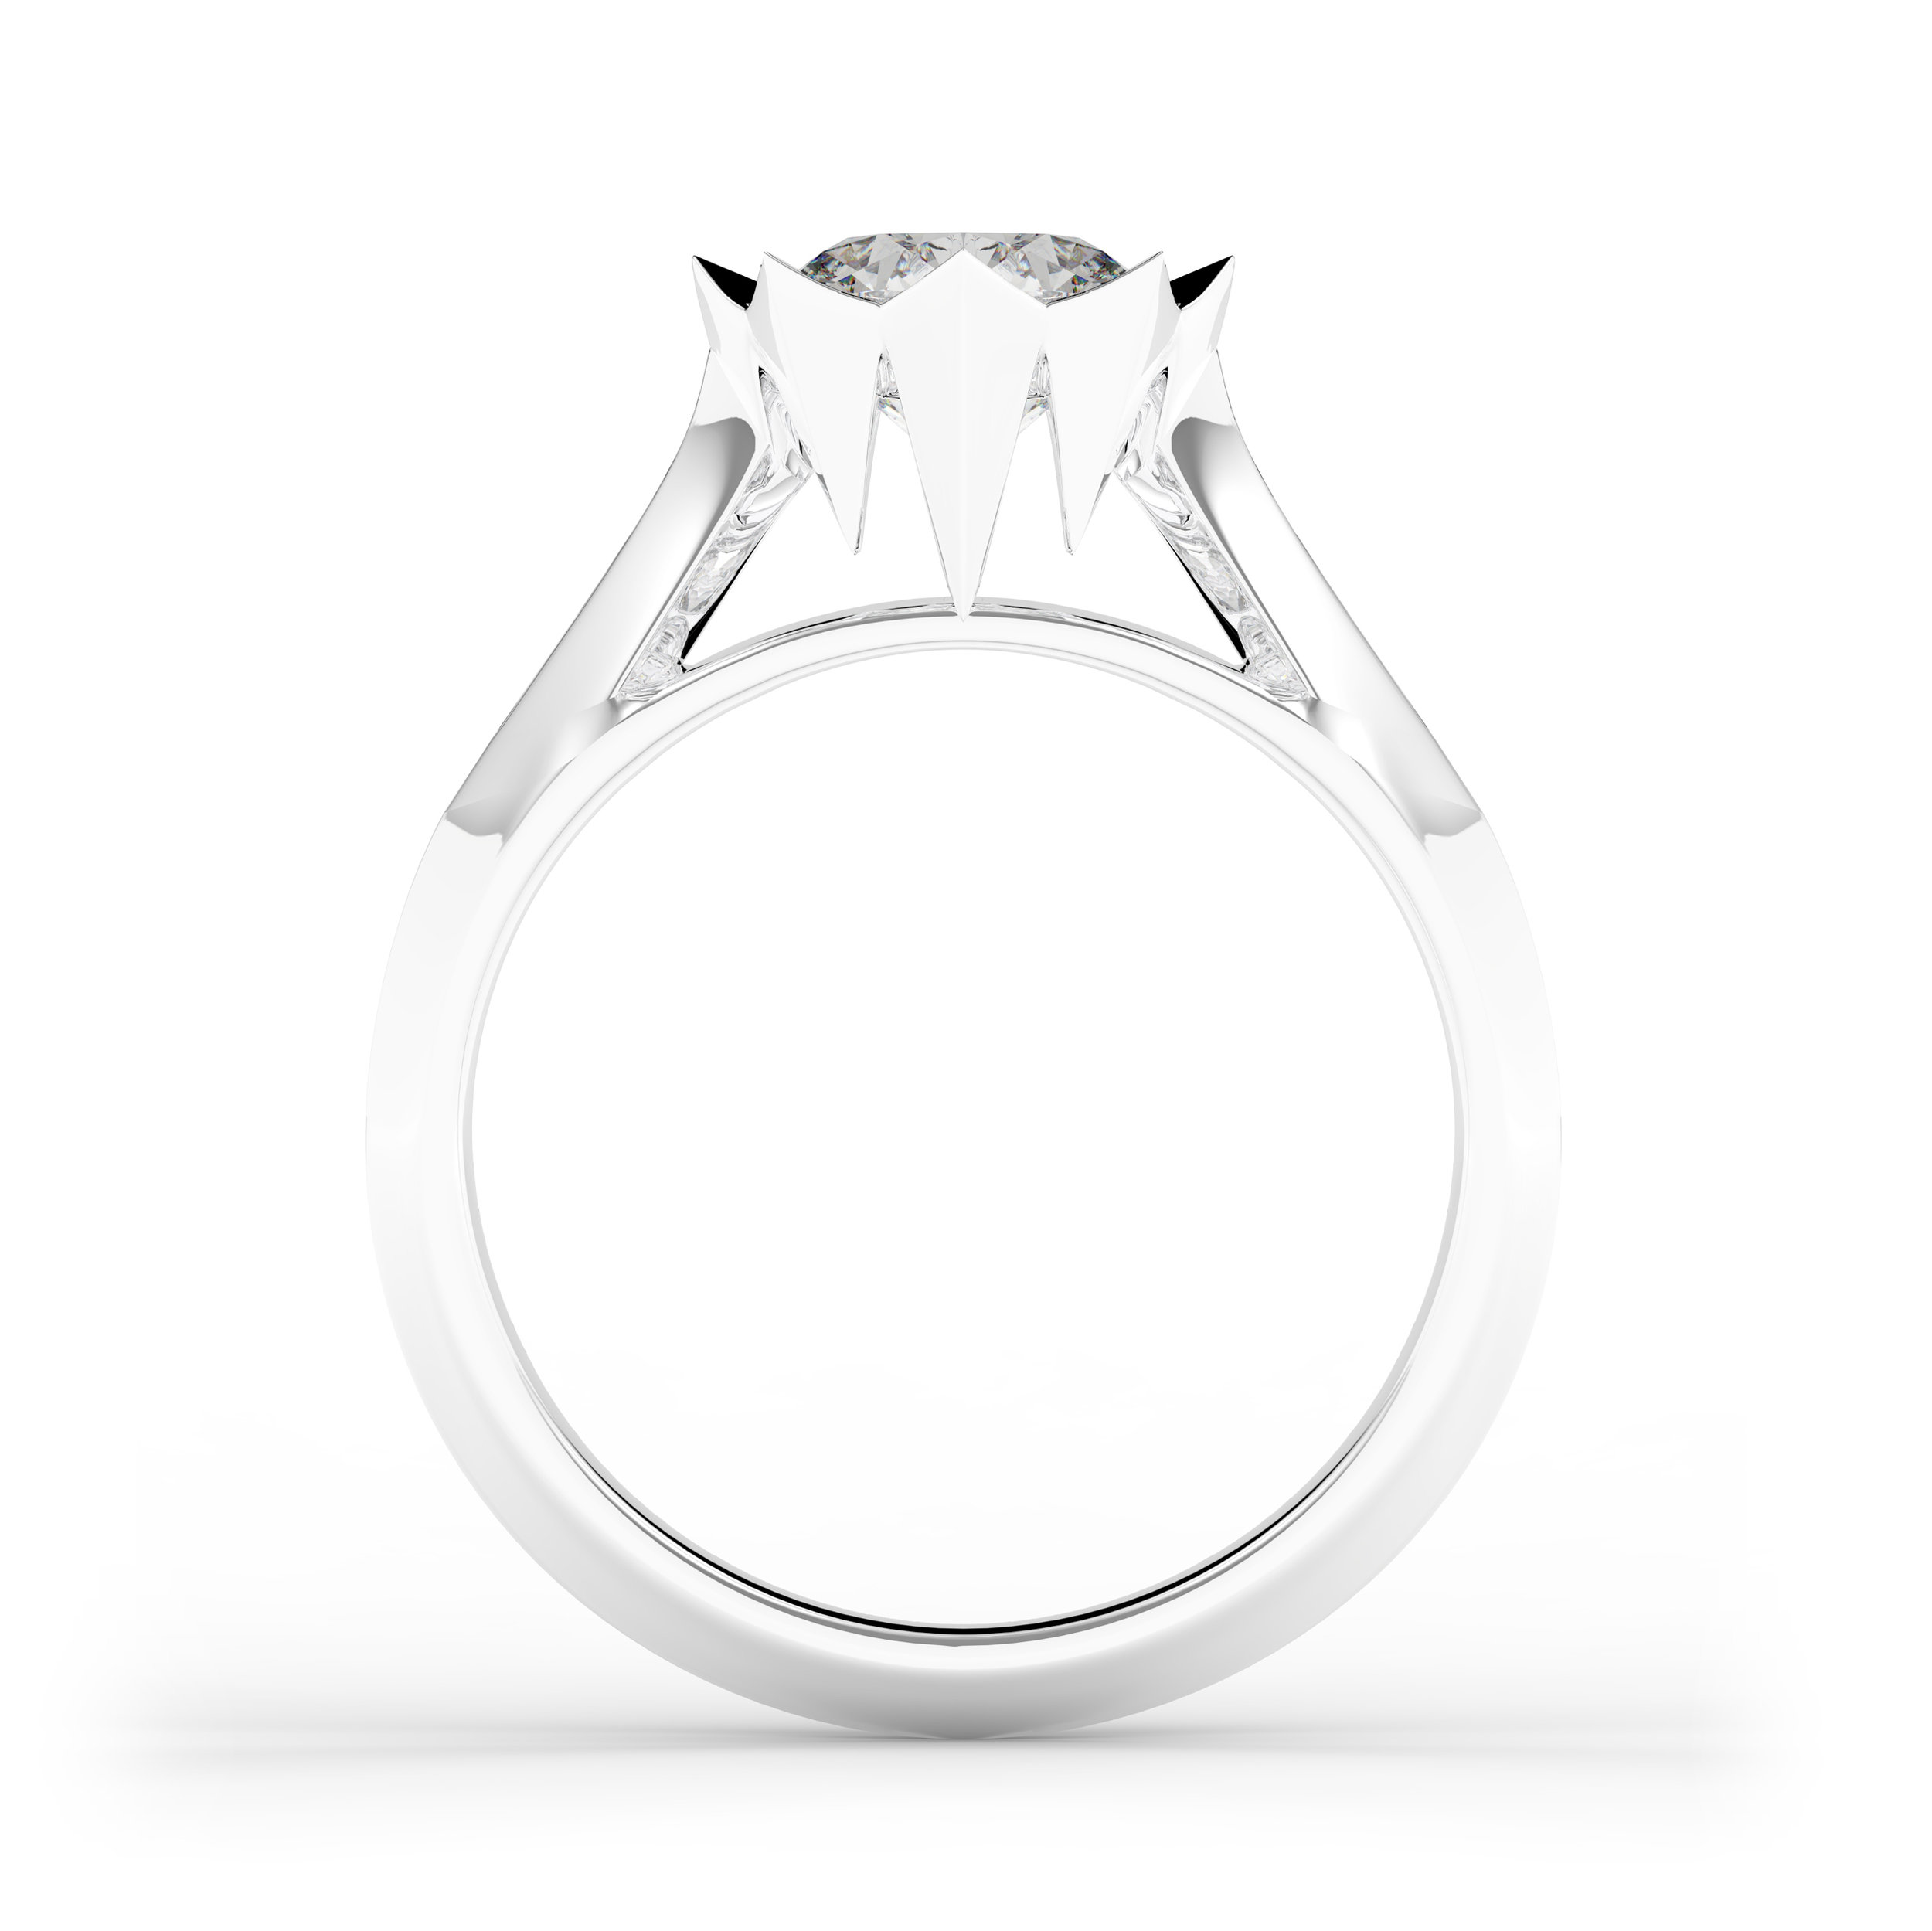 Fire 1 Engagement Ring